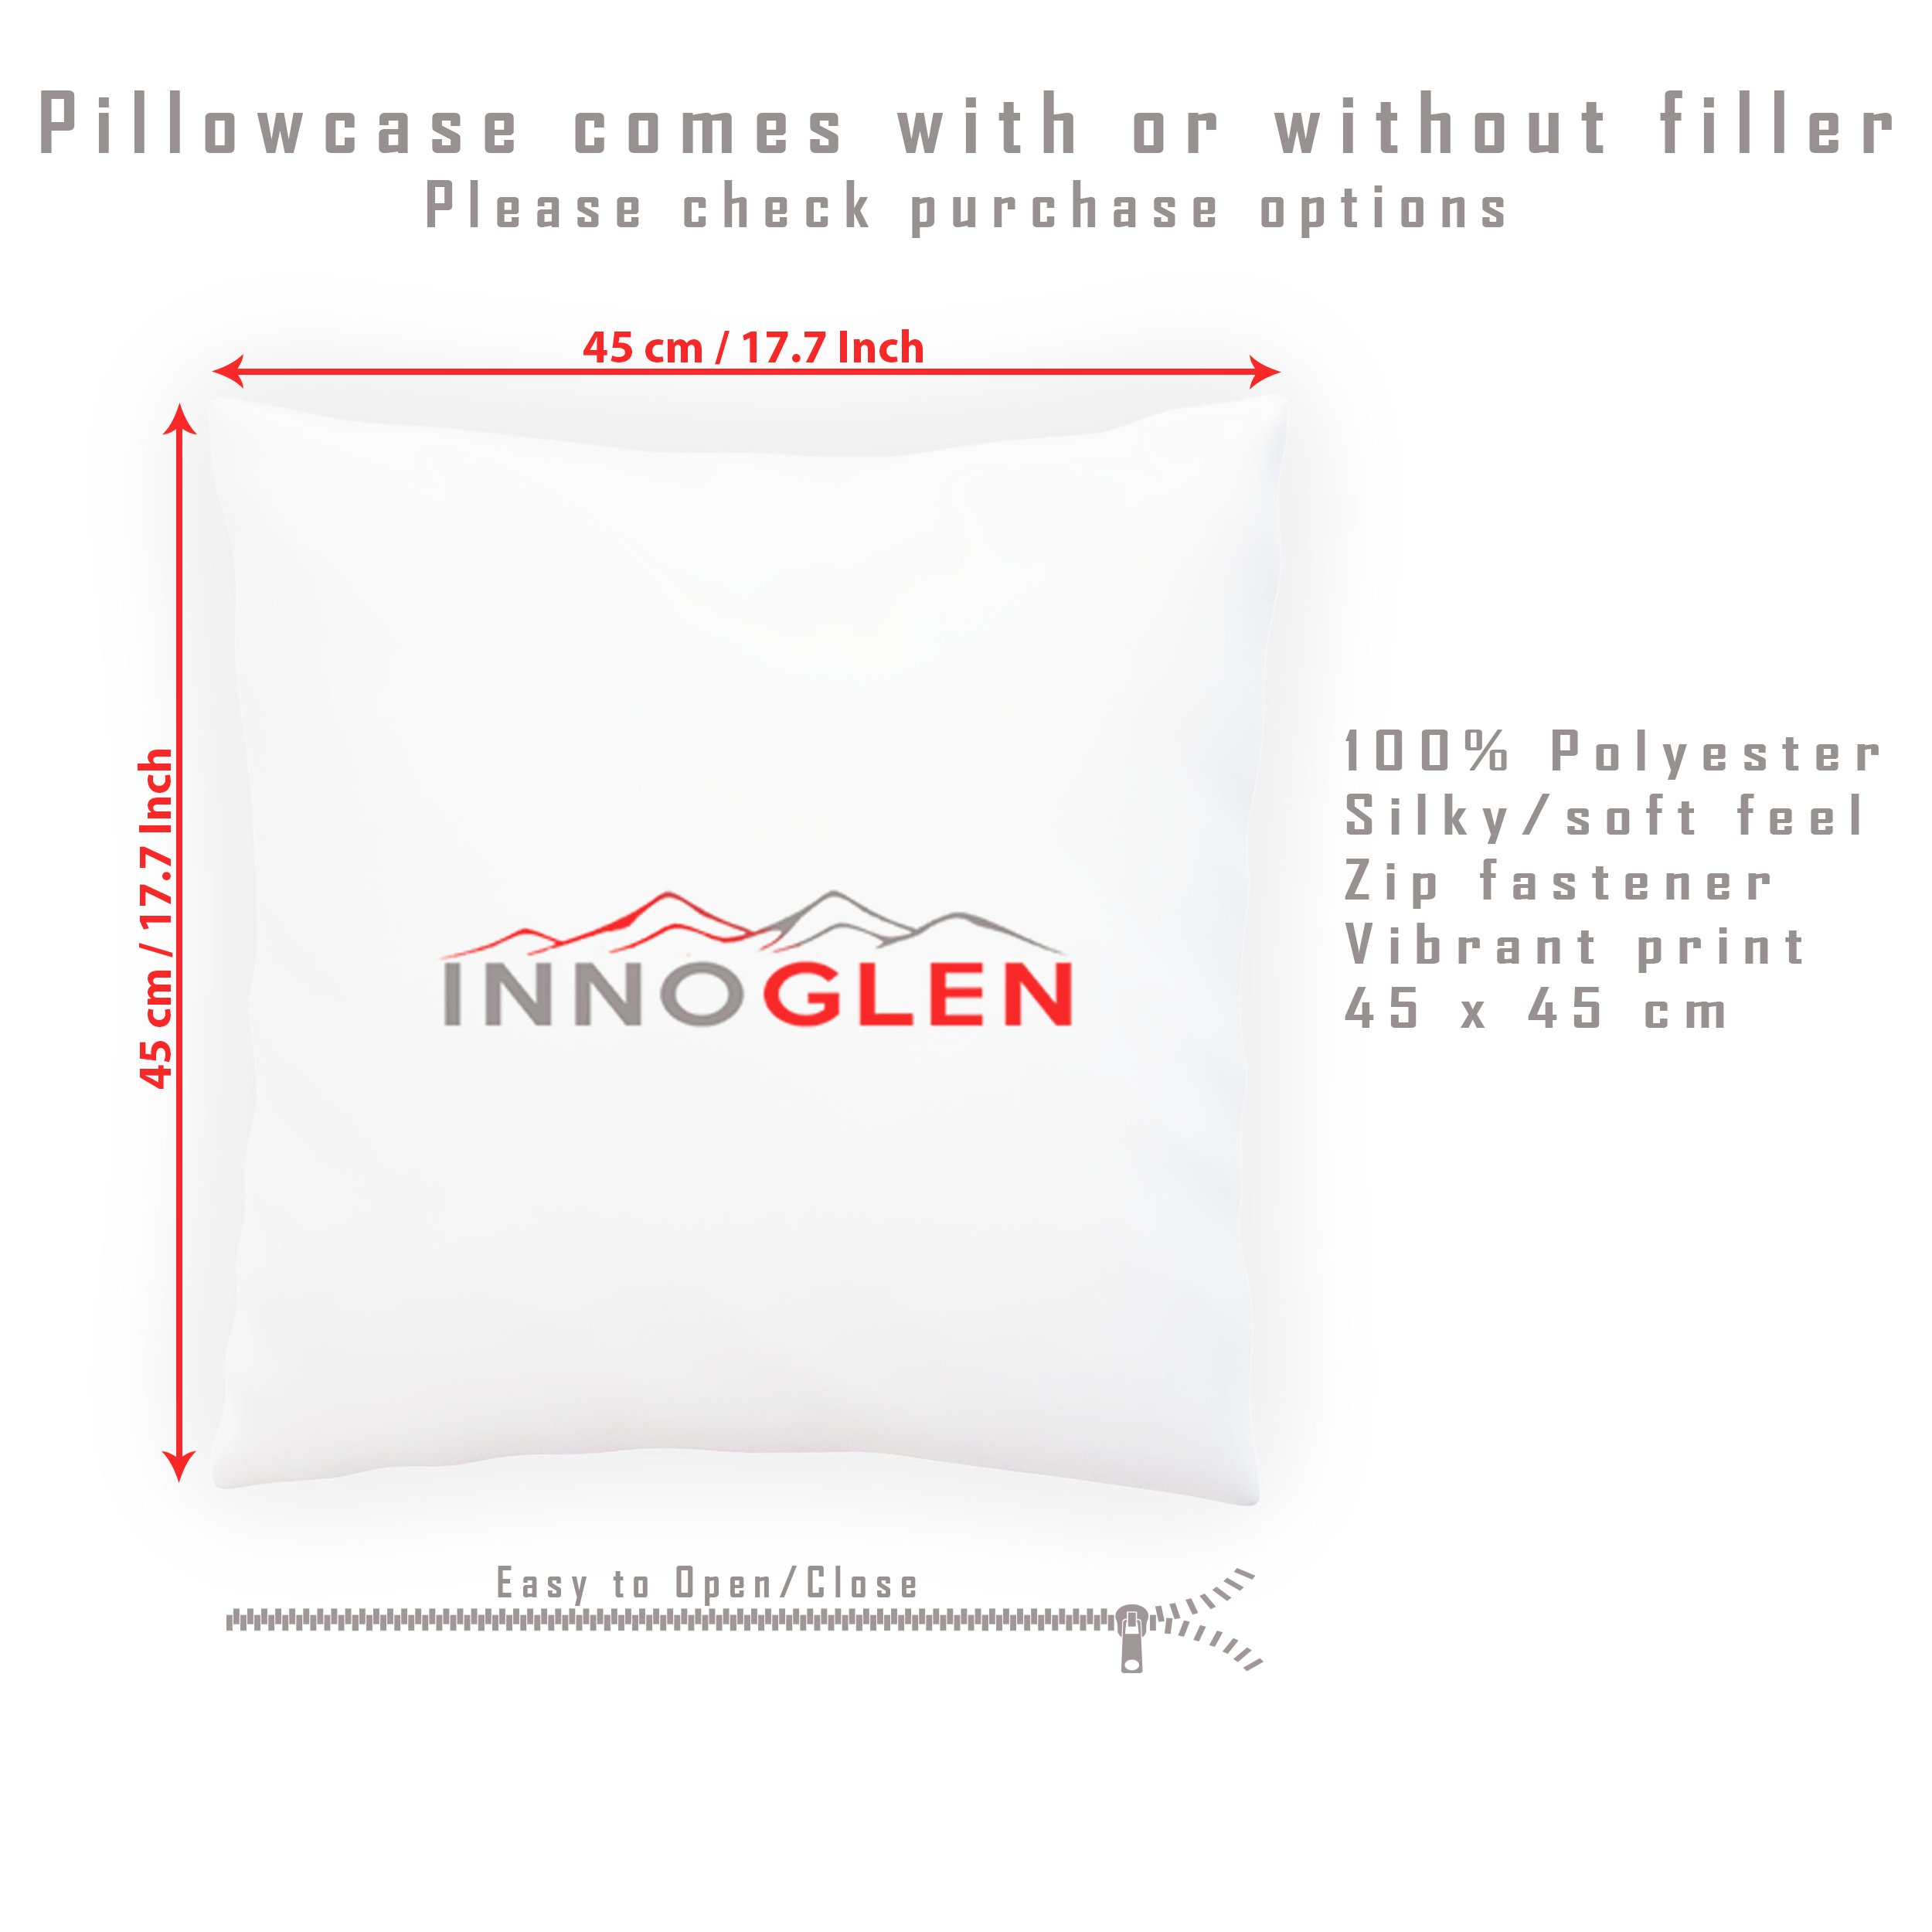 Beauty Relax Health Spa Decorative Pillow , Cushion cover with Insert or Without o688p by INNOGLEN (Image #1)